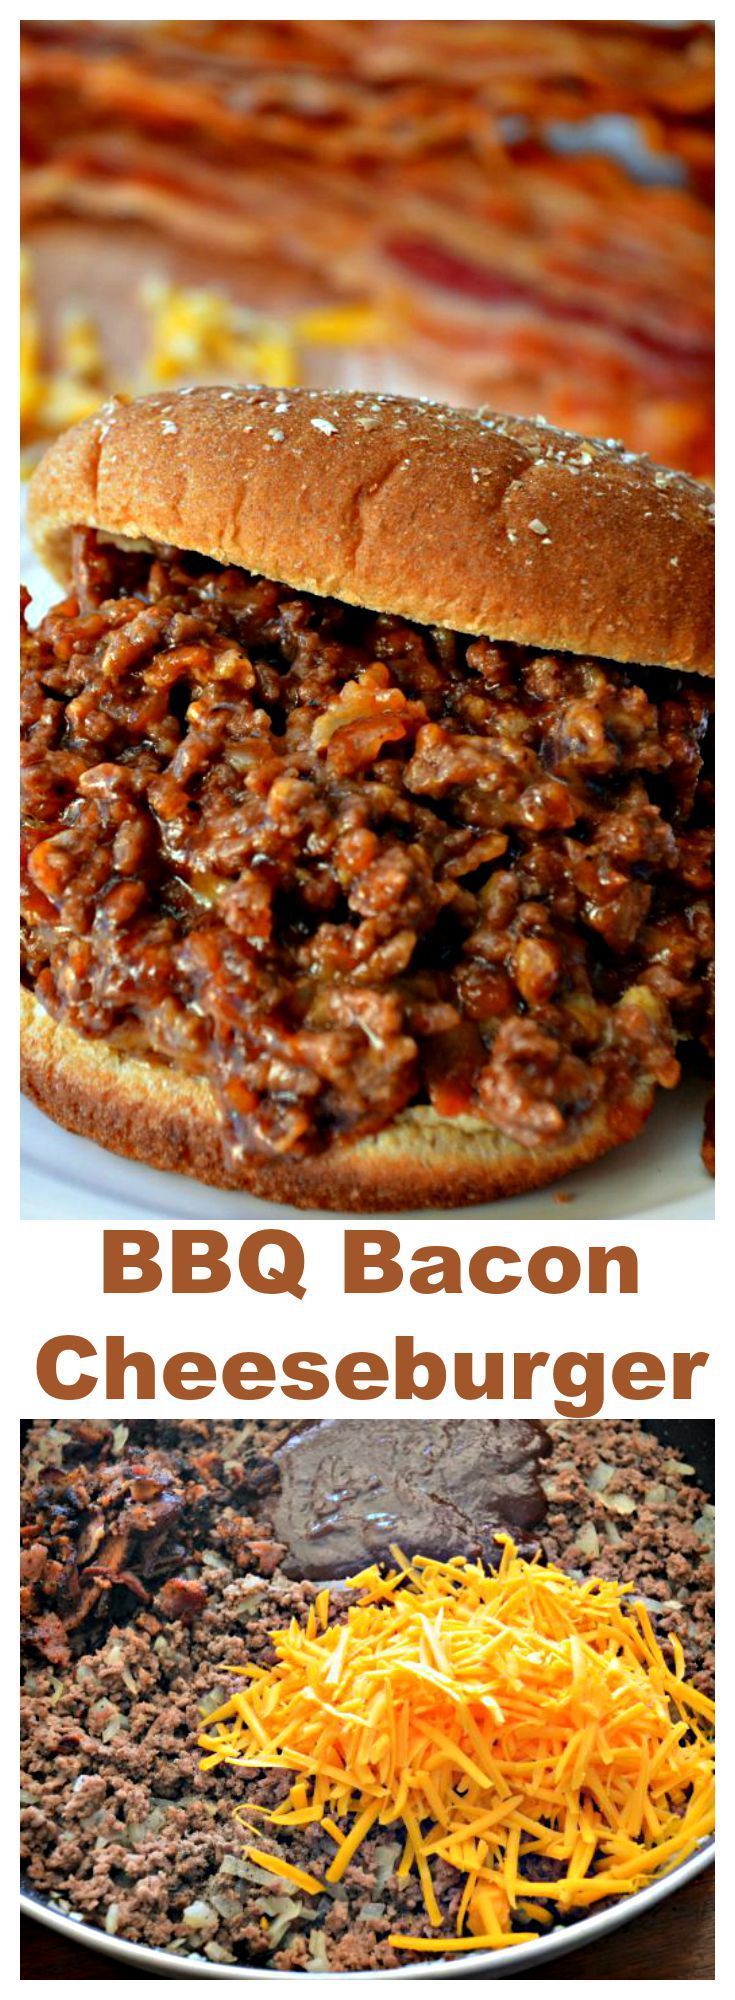 Sloppy Joes with Bacon.  Yum!